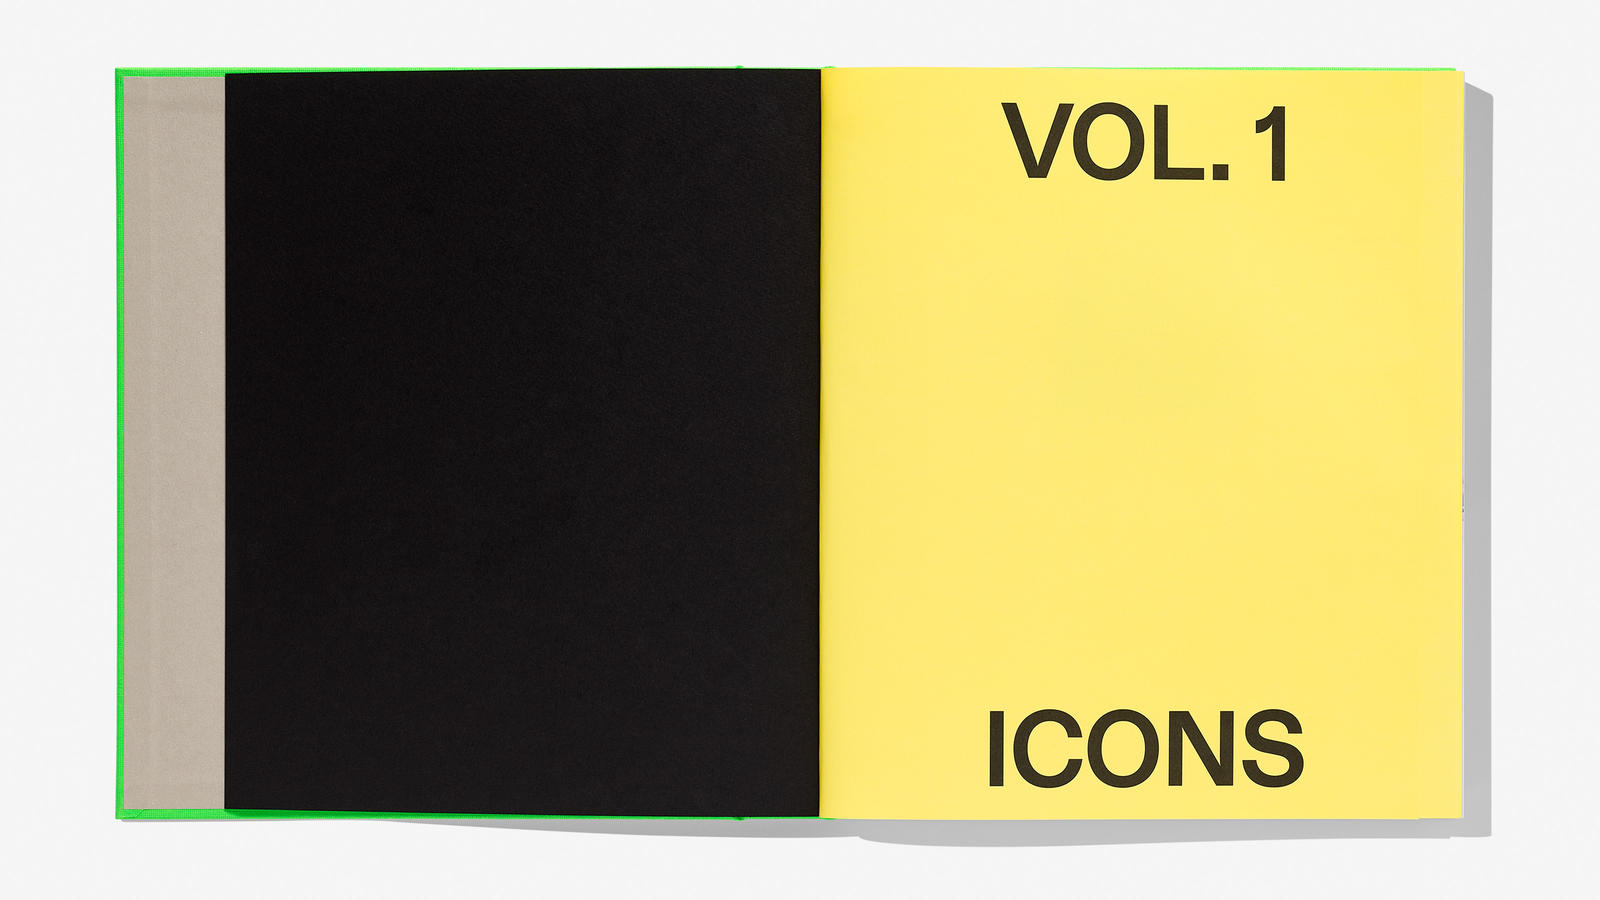 Nike Virgil Abloh Taschen ICONS Book 10